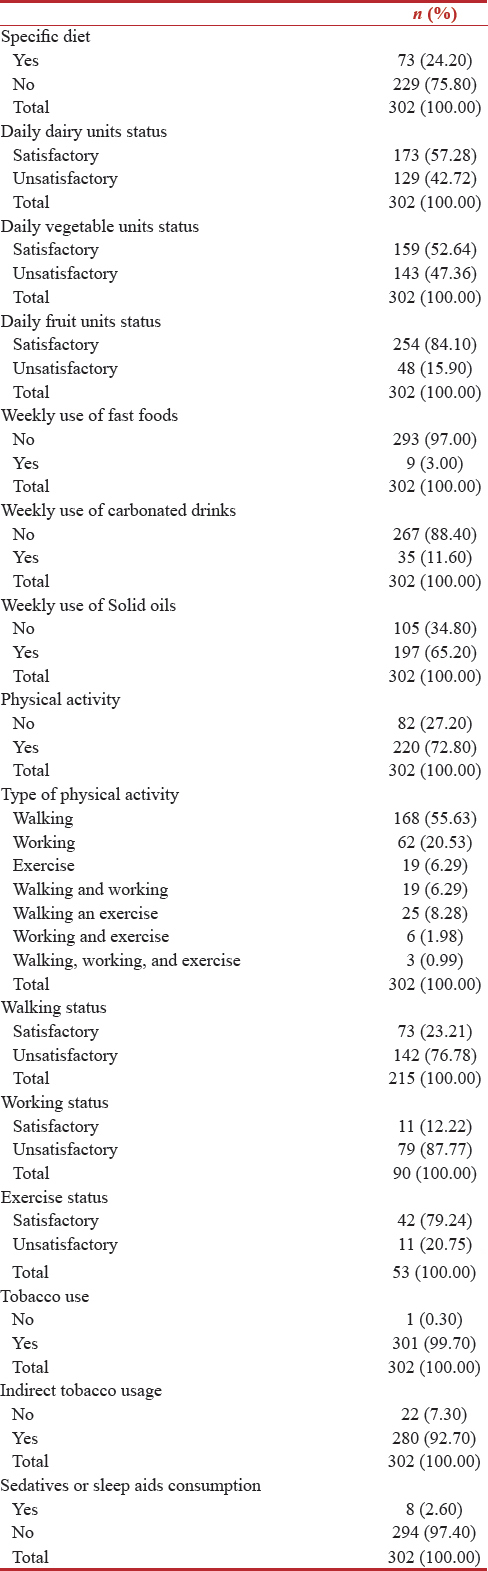 Table 2: Lifestyle of participants (diet, physical activities, and tobacco/alcohol consumption)